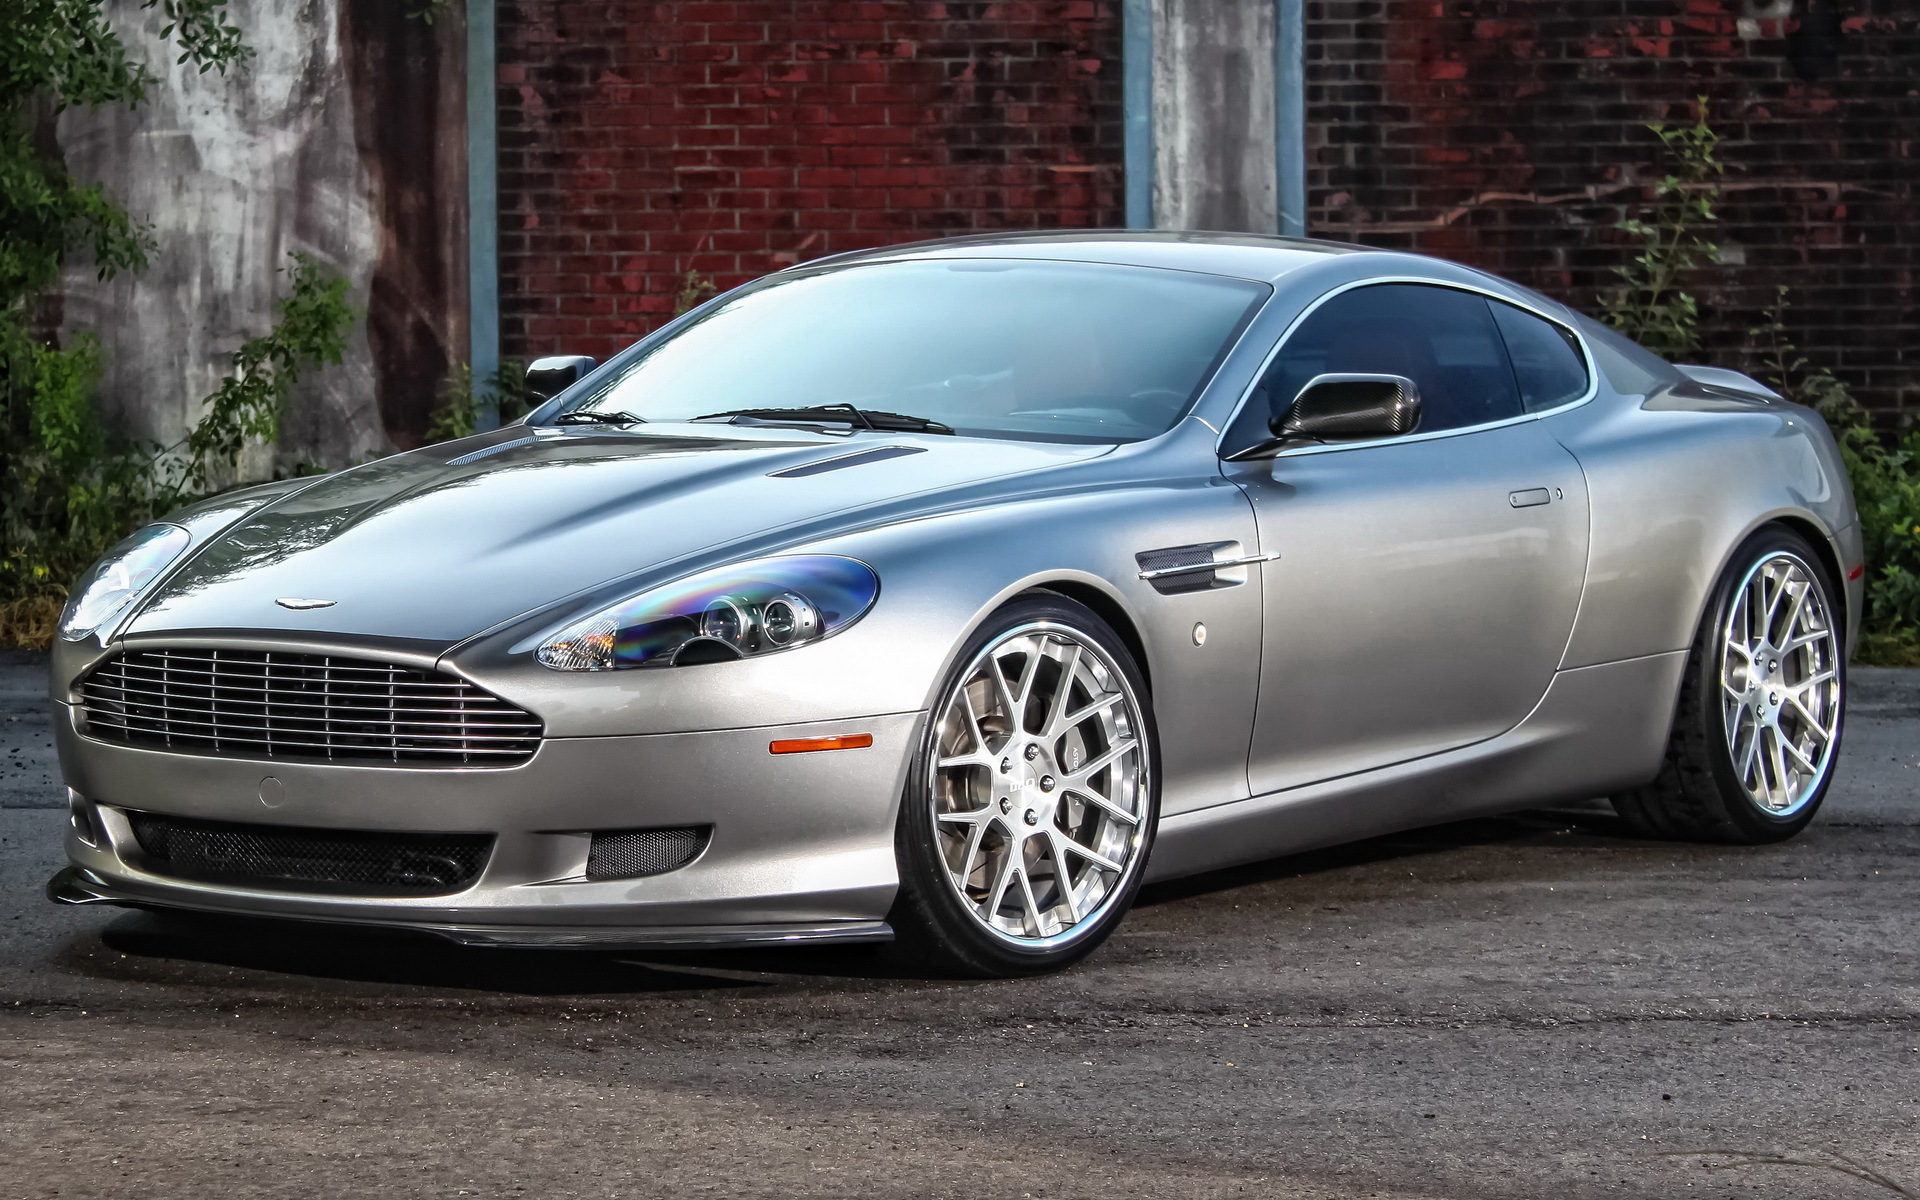 Watch in addition Photos likewise The Ultimate Aston Martin Db9 Buyers Guide besides Top 6 James Bond Cars in addition Aston Martin Vanquish Volante Review Price And Specs Pictures. on aston martin dbs v12 vanquish